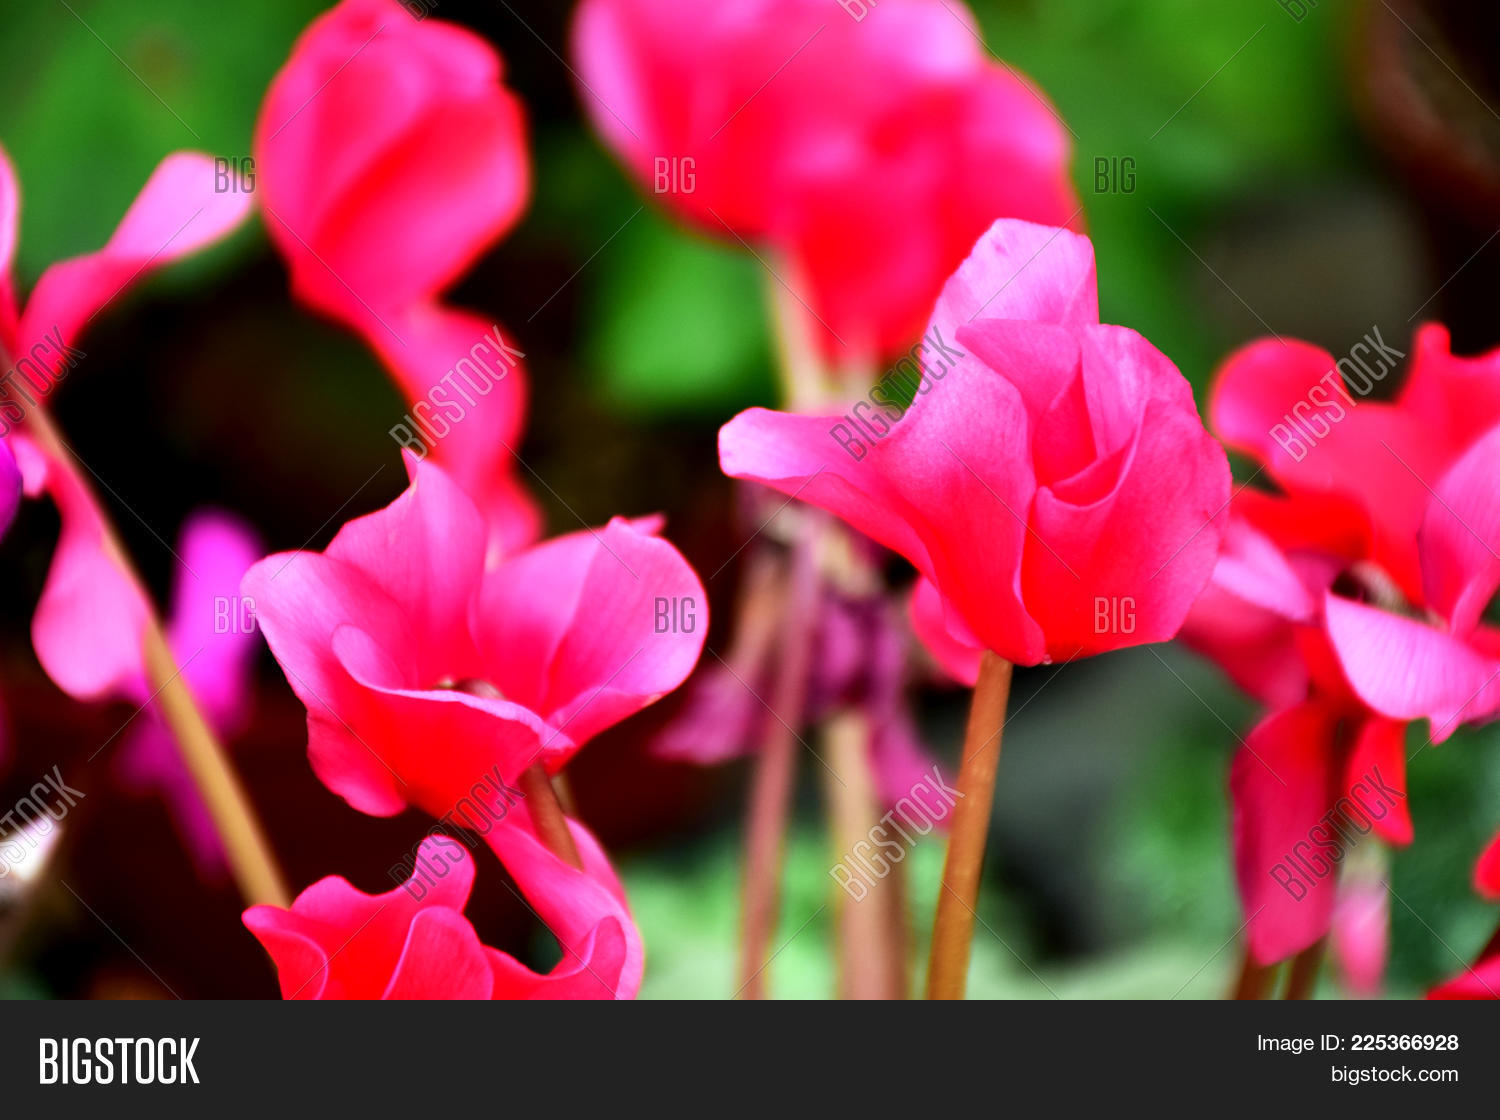 Pink Flowers Bushes Image Photo Free Trial Bigstock